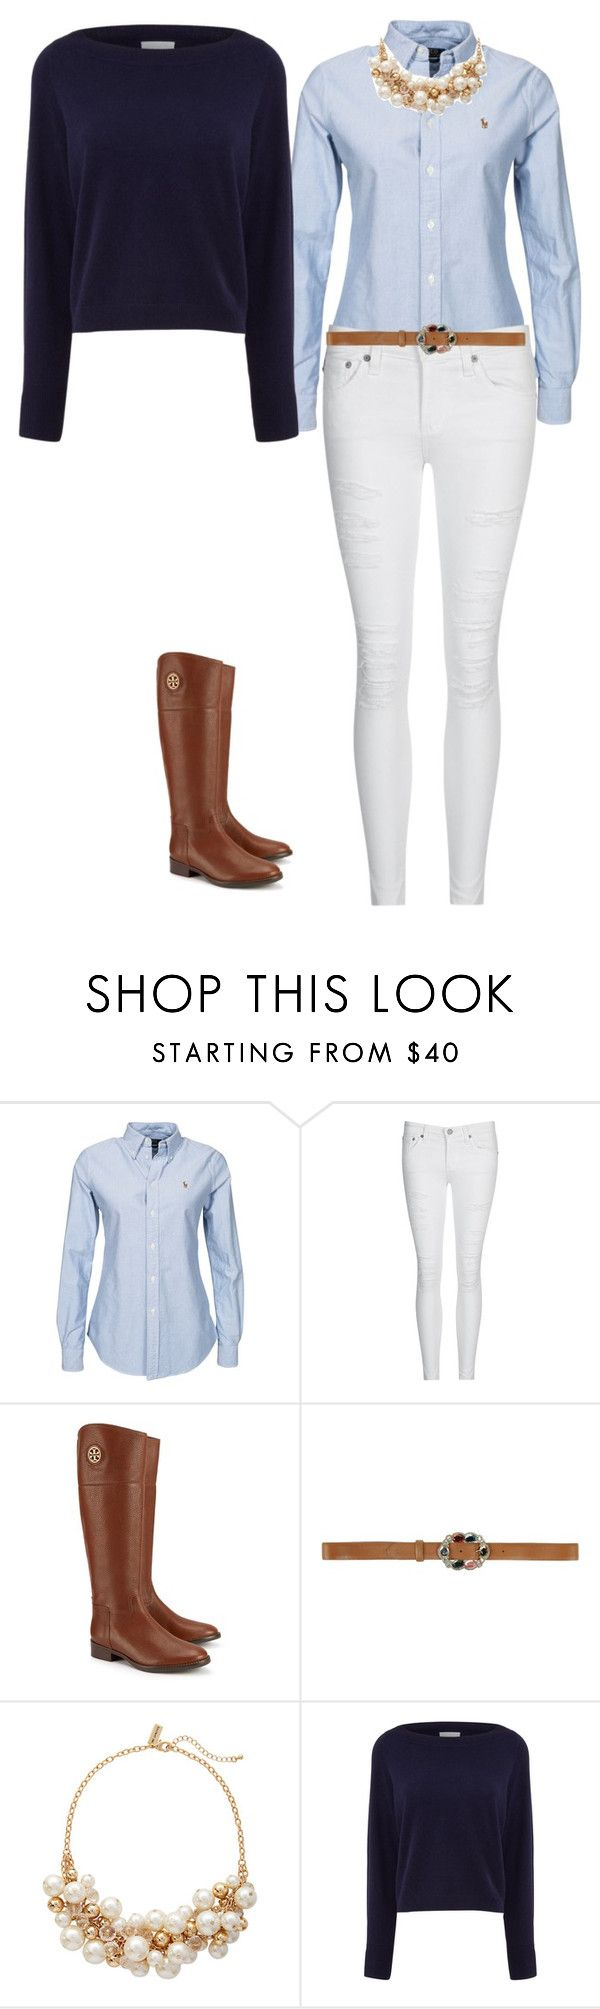 """""""Equestrian"""" by aline-brodbeck on Polyvore featuring moda, AG Adriano Goldschmied, Tory Burch, Love Moschino, The Limited e Osman"""